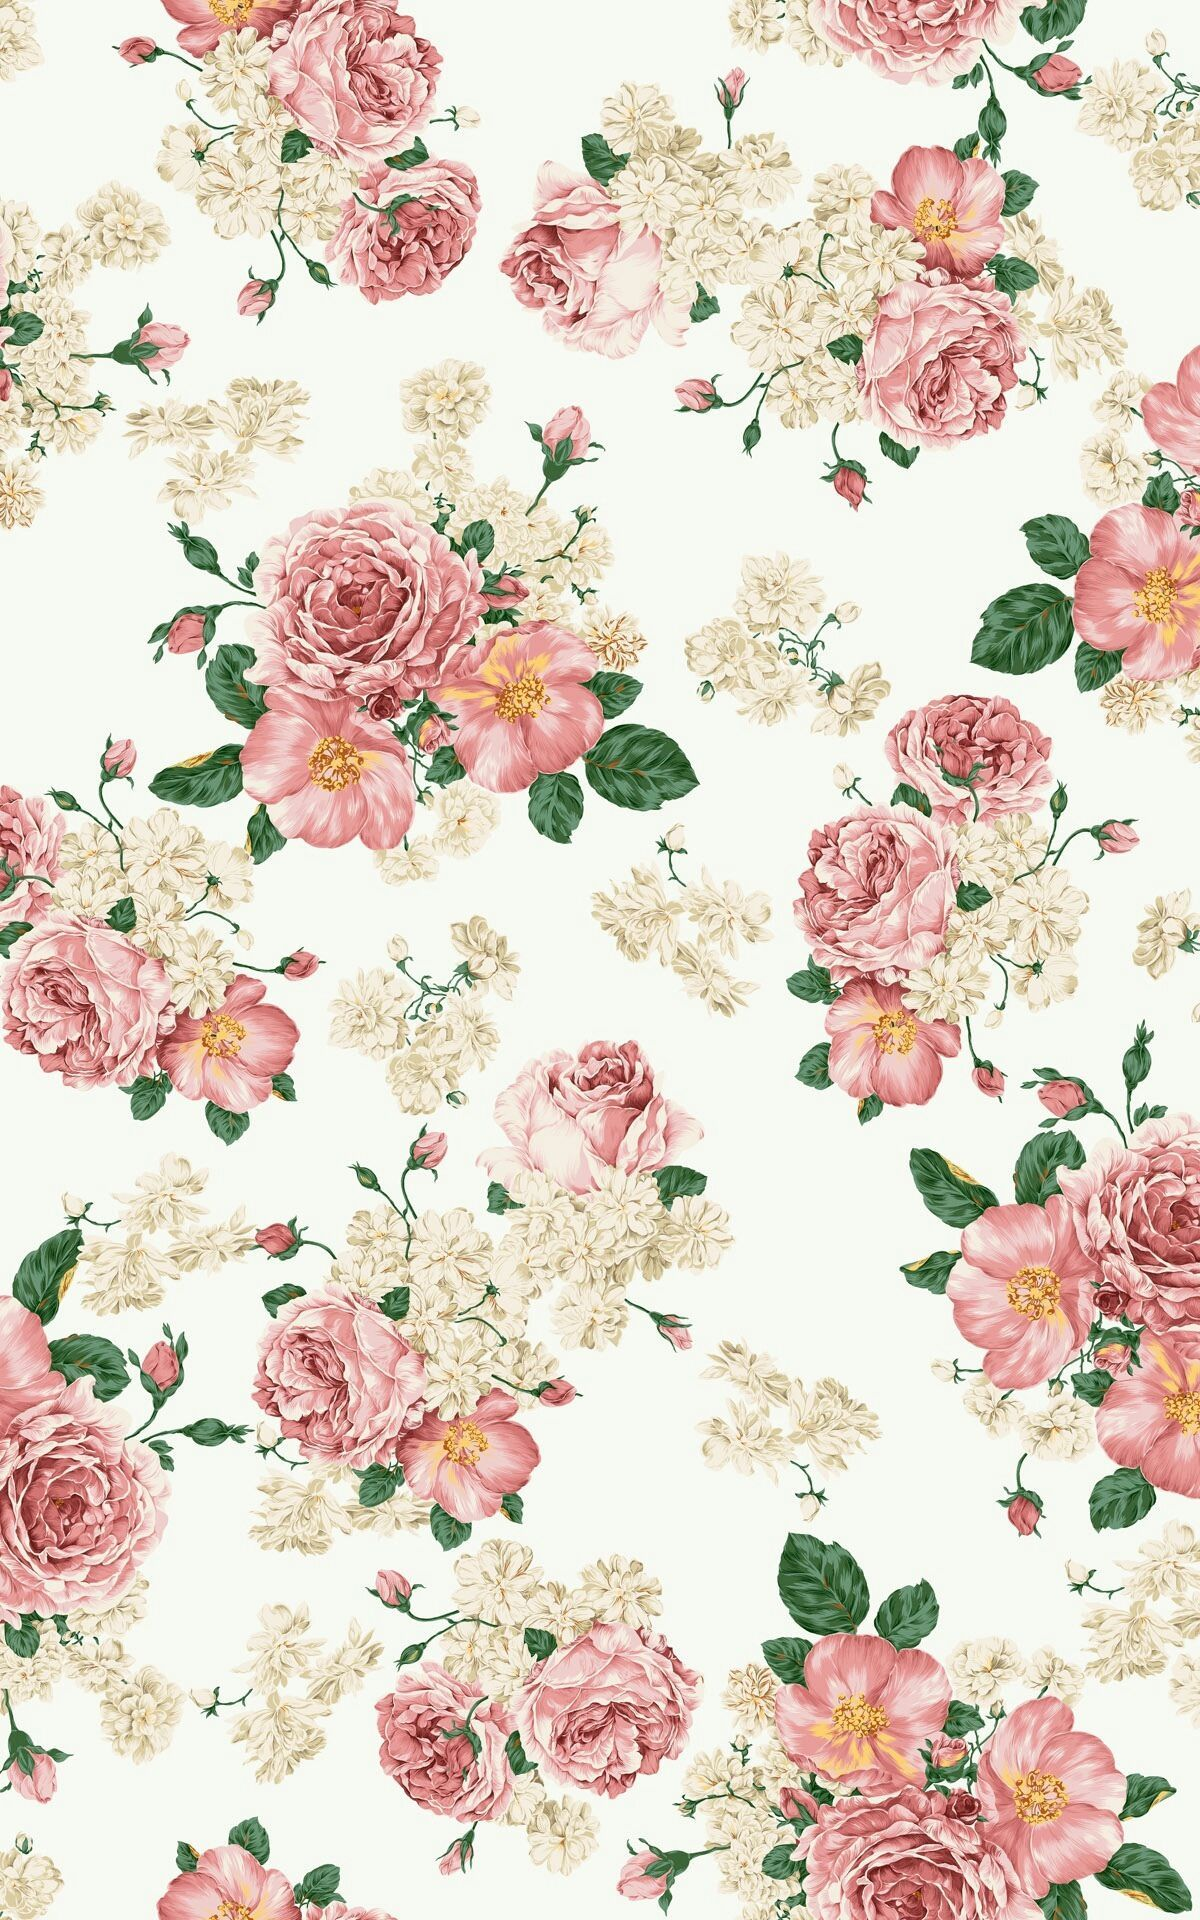 Flower Lock Screen Floral Wallpaper Iphone Vintage Flowers Wallpaper Floral Wallpaper